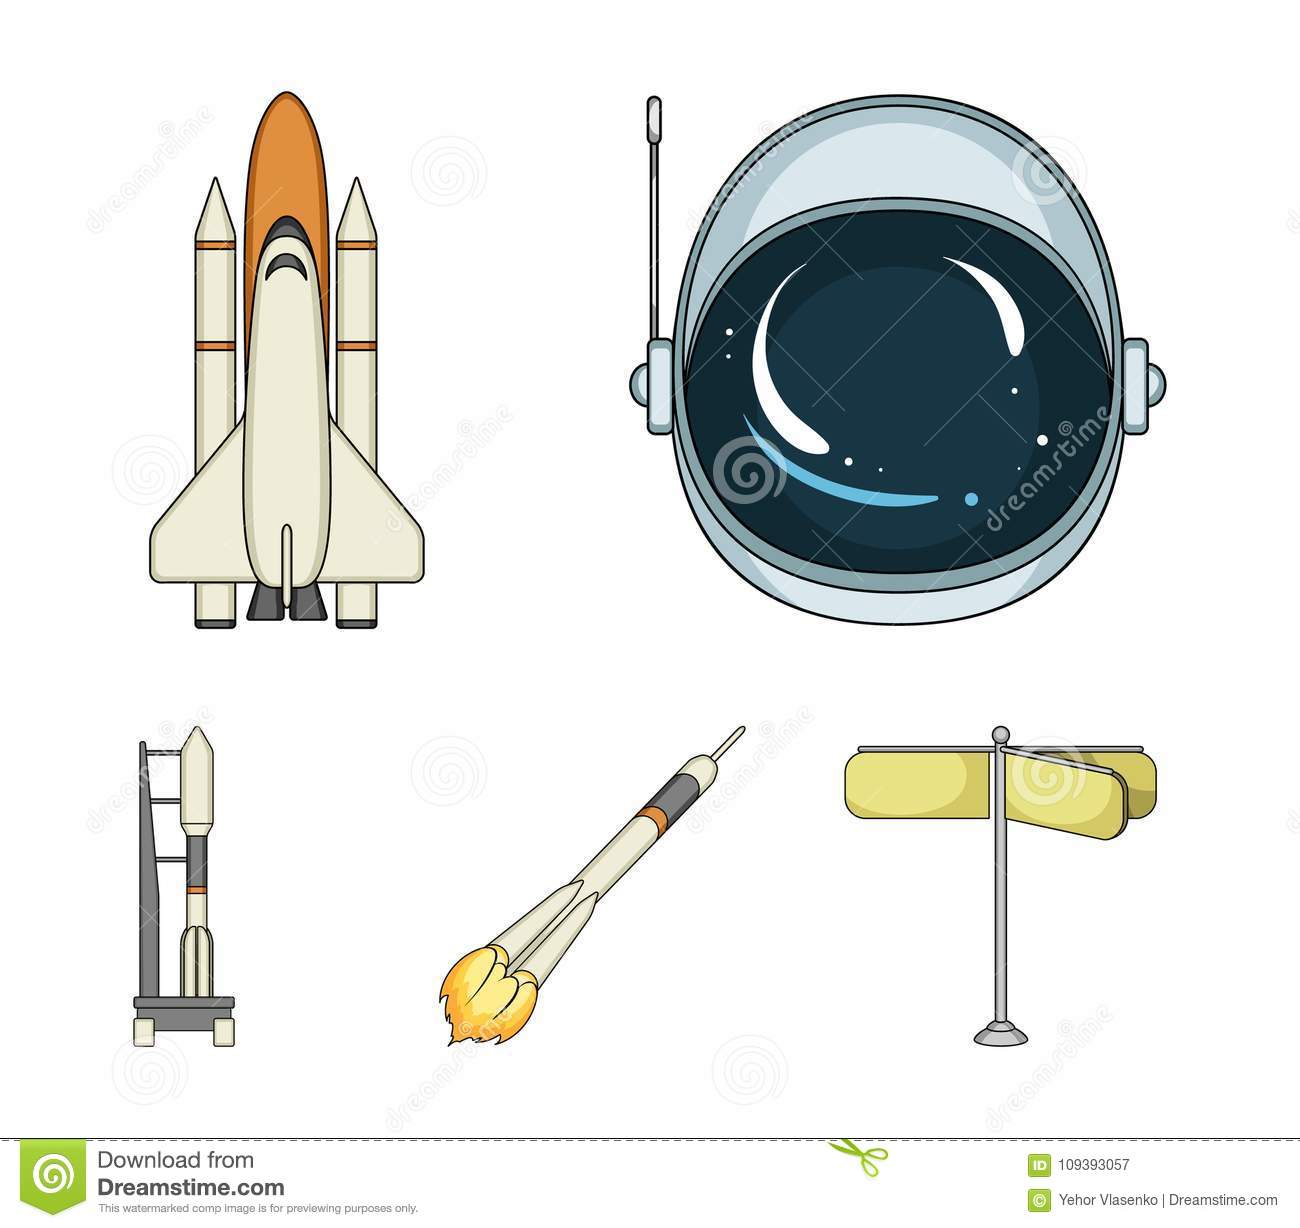 spaceship space cargo shuttle launch pad astronaut s helmet space technology set collection icons spaceship 109393057 a spaceship in space, a cargo shuttle, a launch pad, an astronaut`s